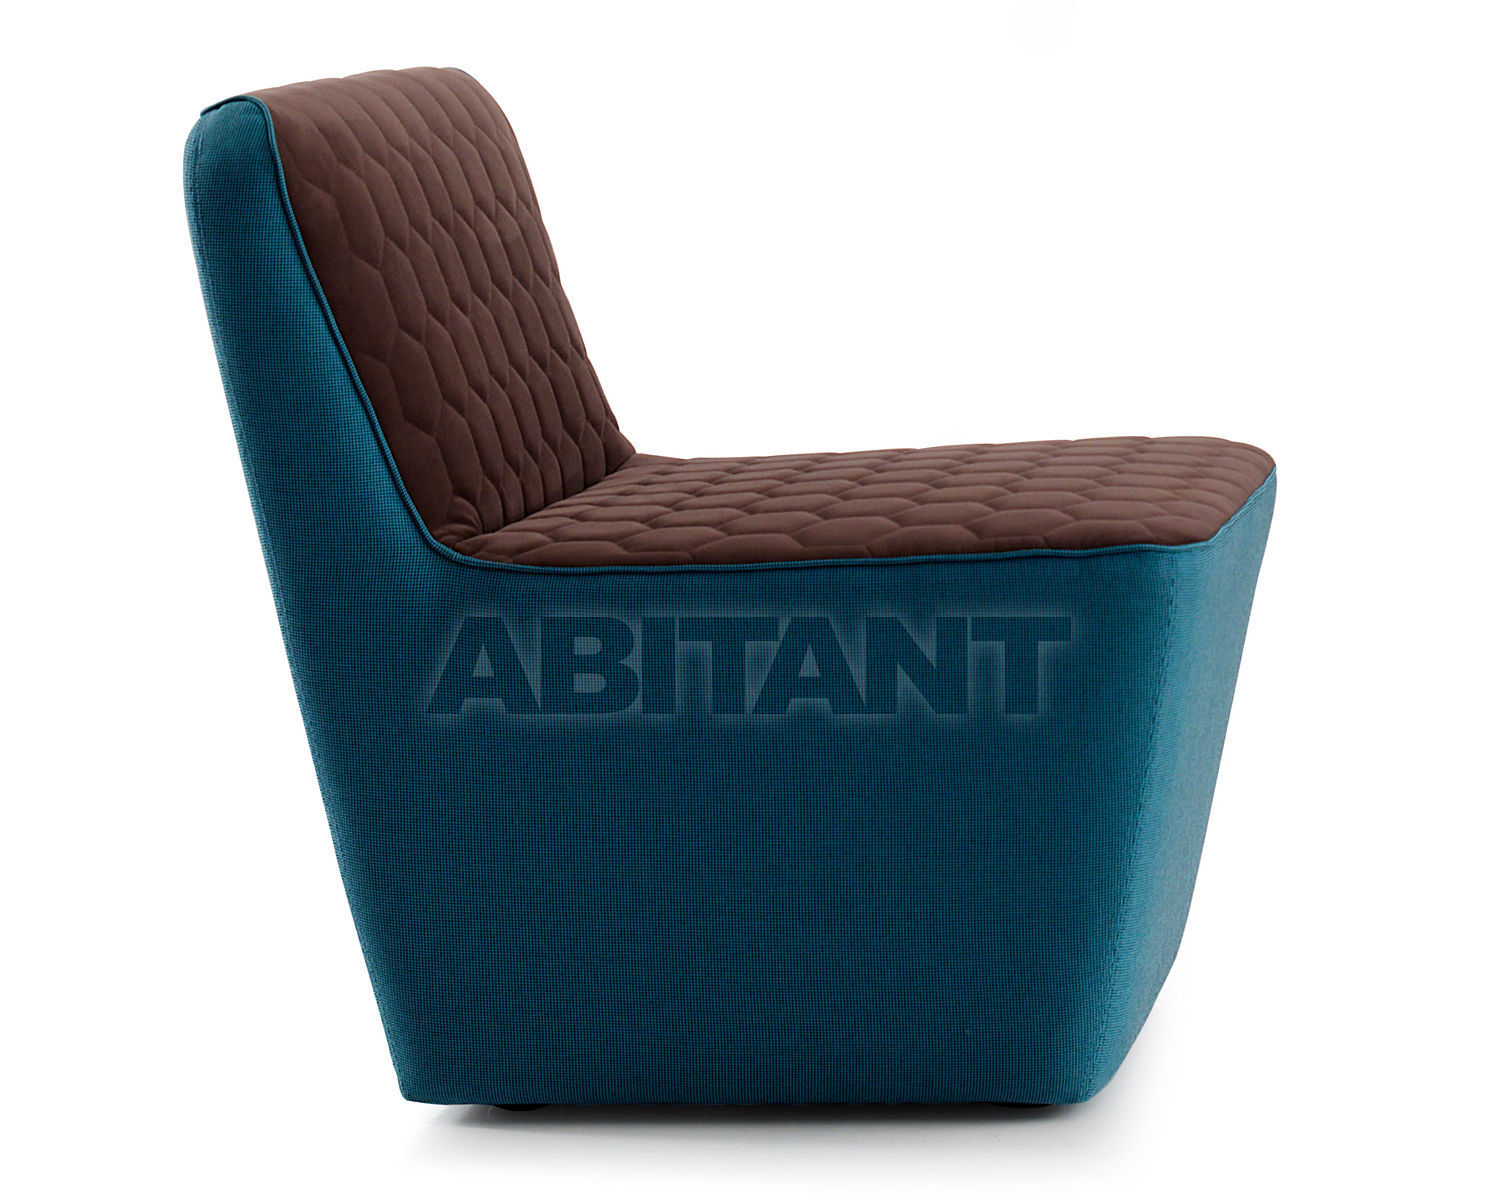 Купить Кресло Tea Sancal Diseno, S.L. Sofa 250.51.G blue